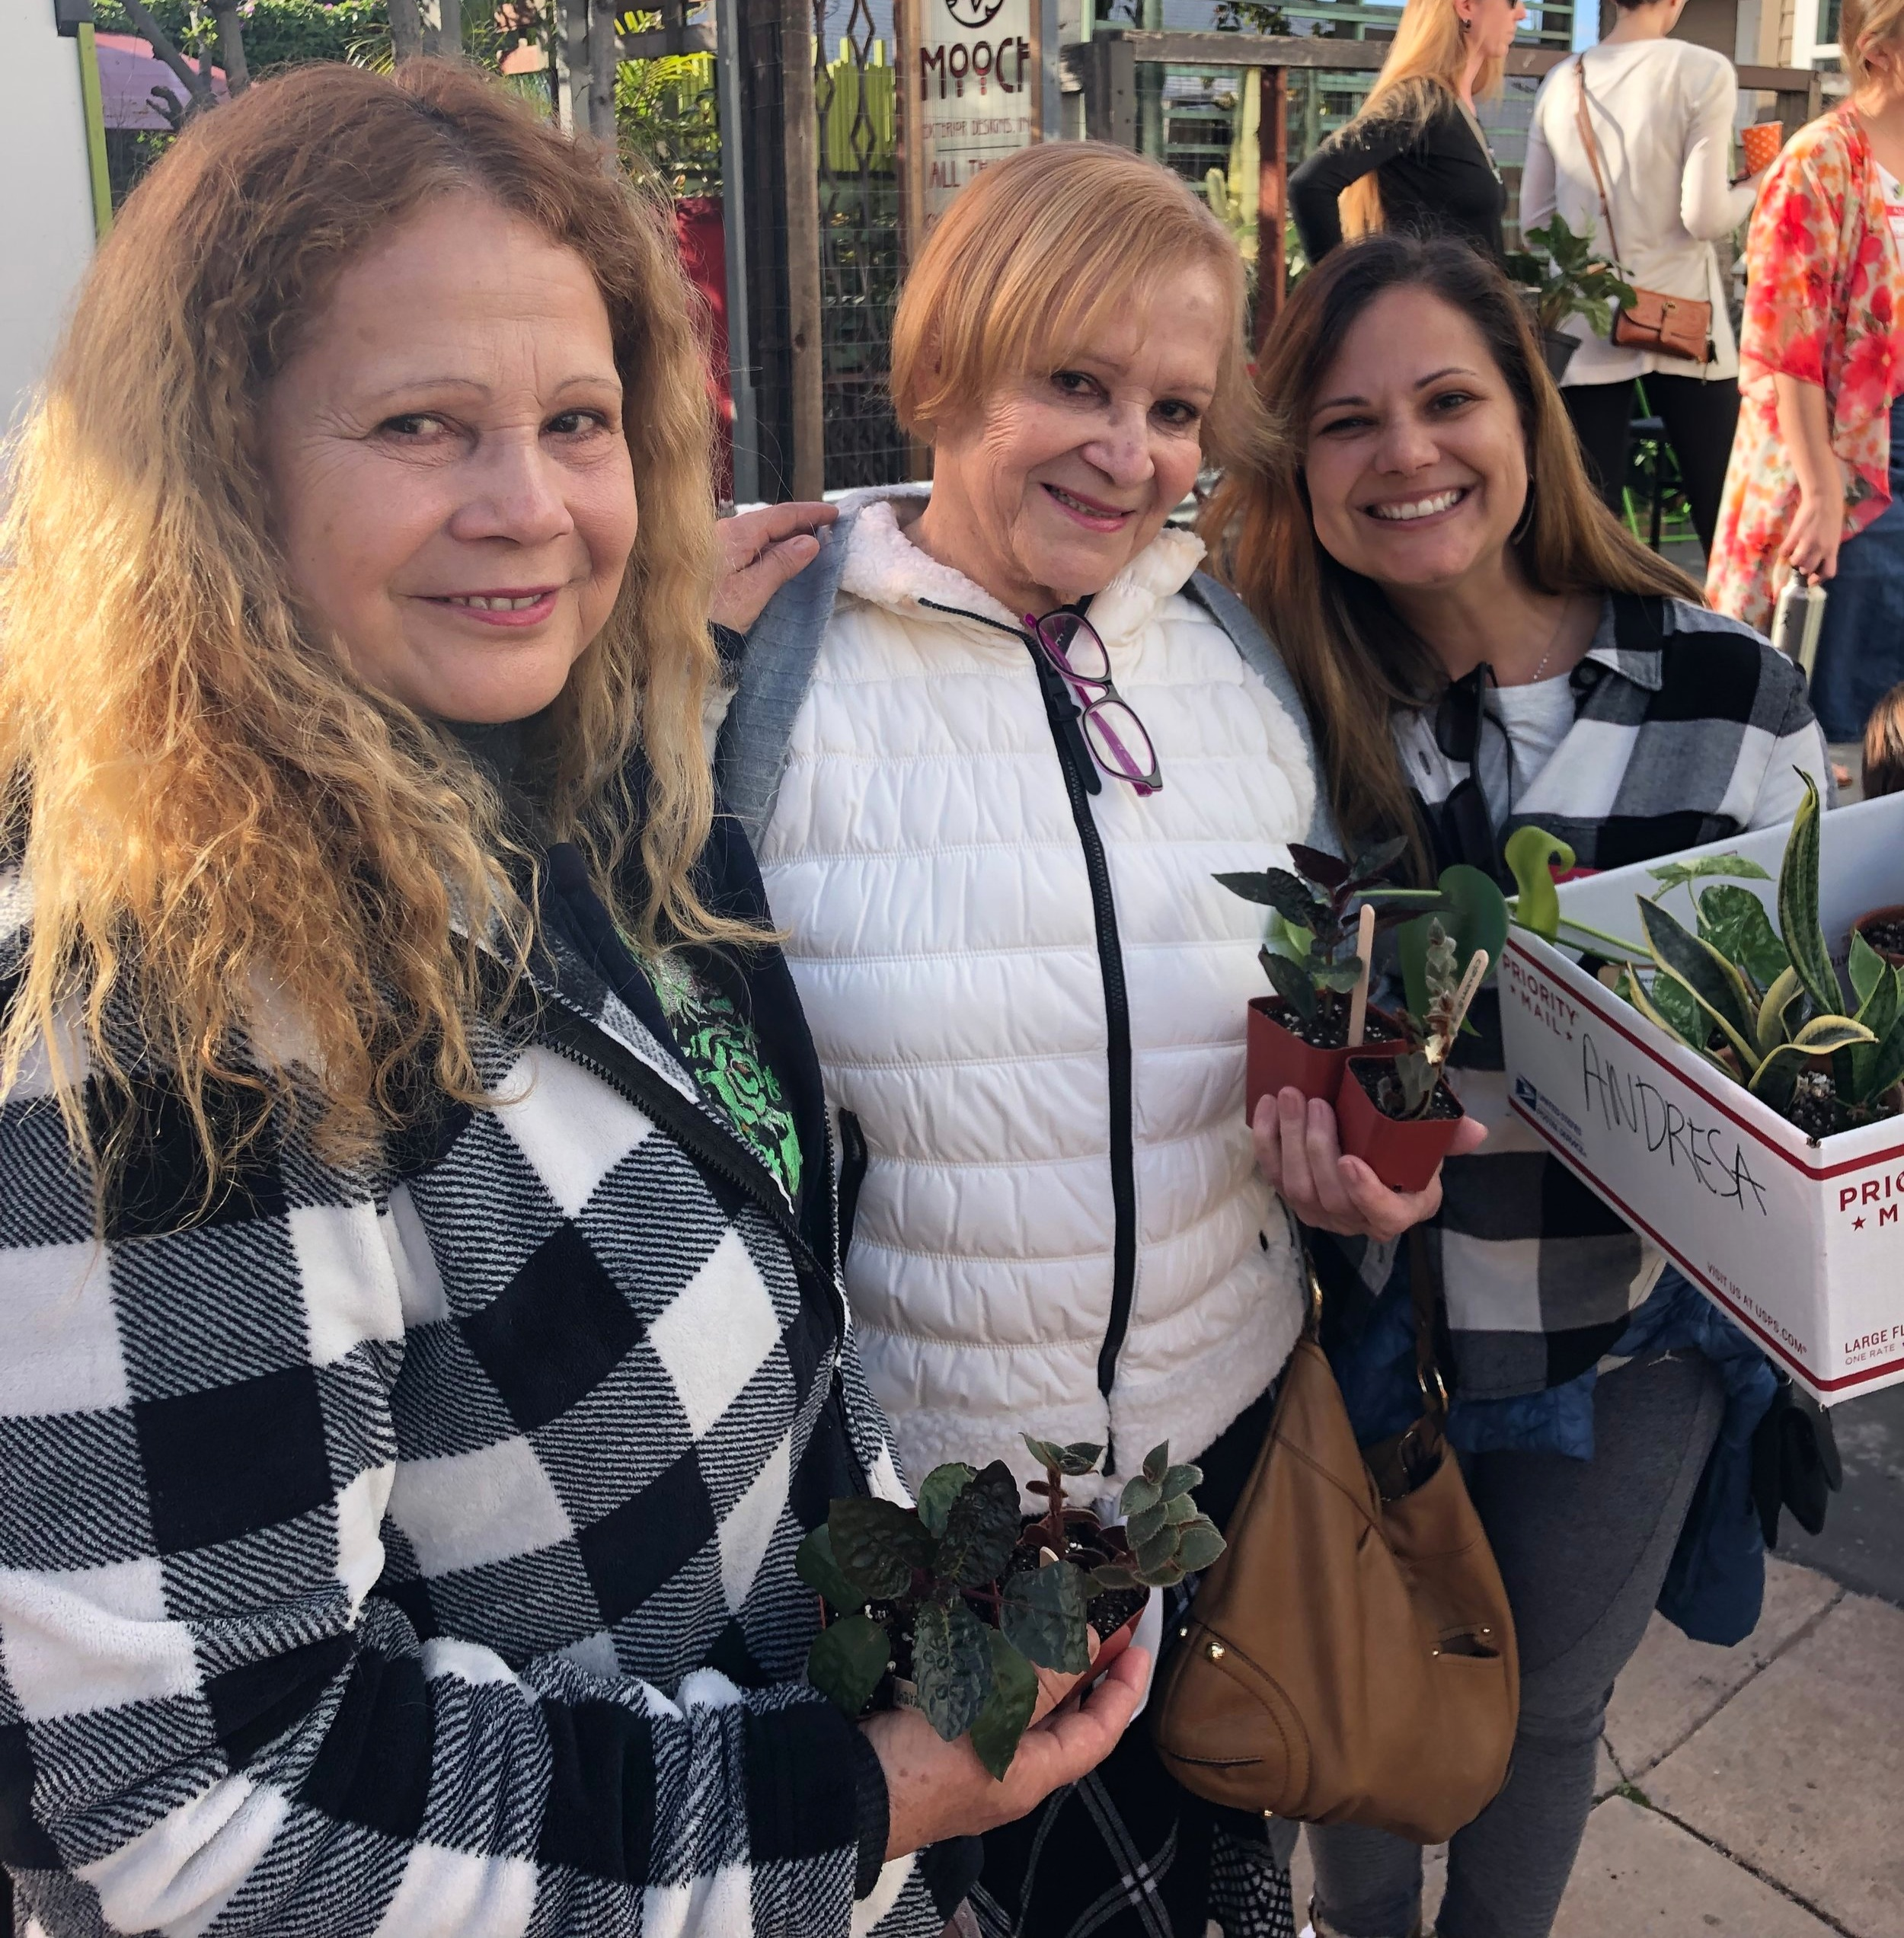 Three generations of plant lovers attended the last swap together. So heartwarming!